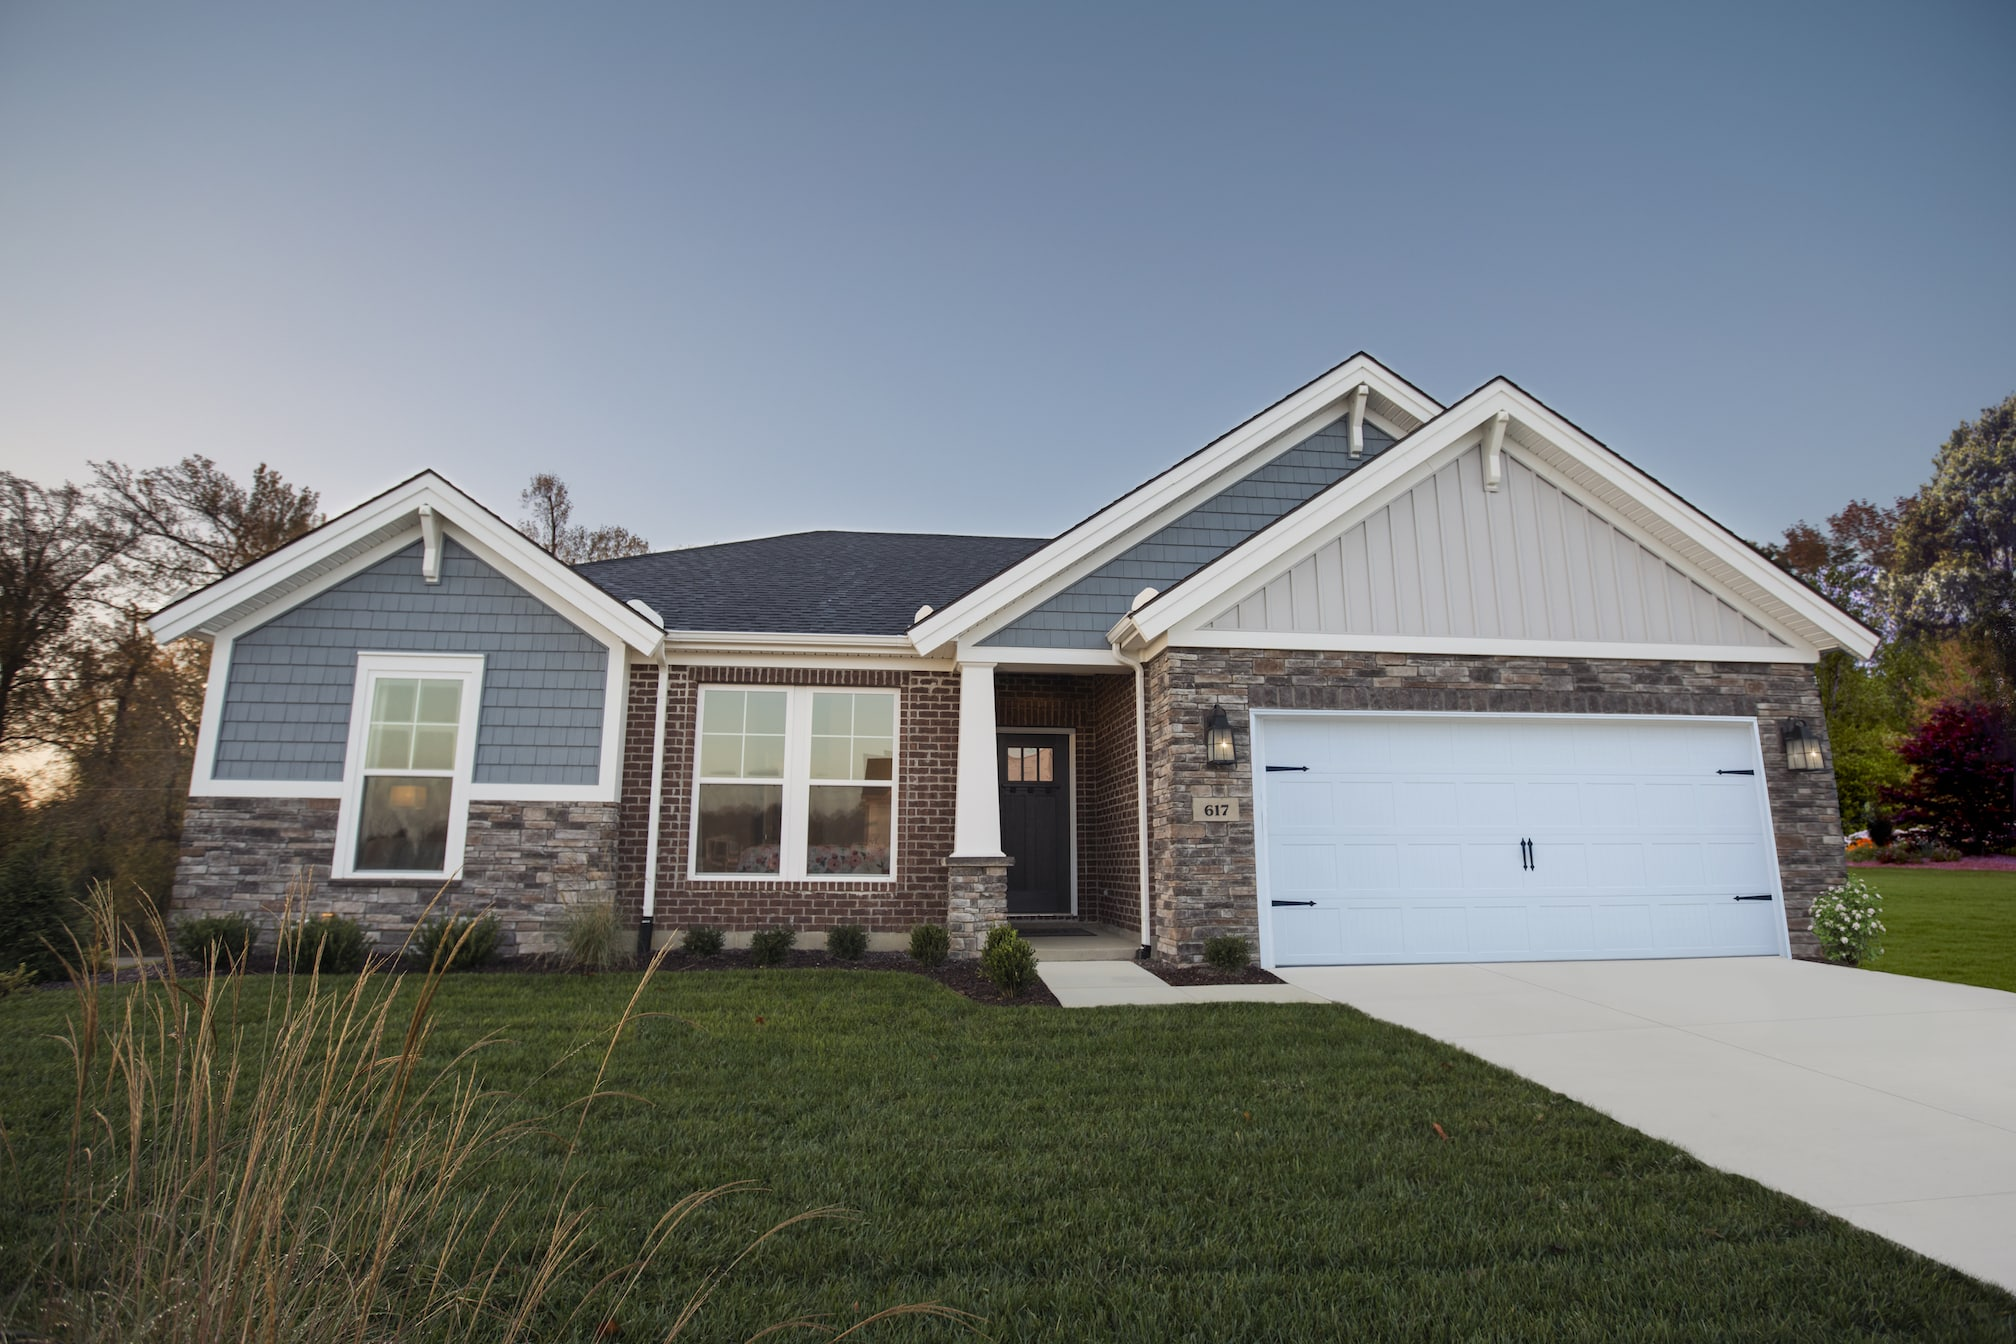 Fall Tour of Homes - #3 The Orchard | 617 Criterion Way, 47711